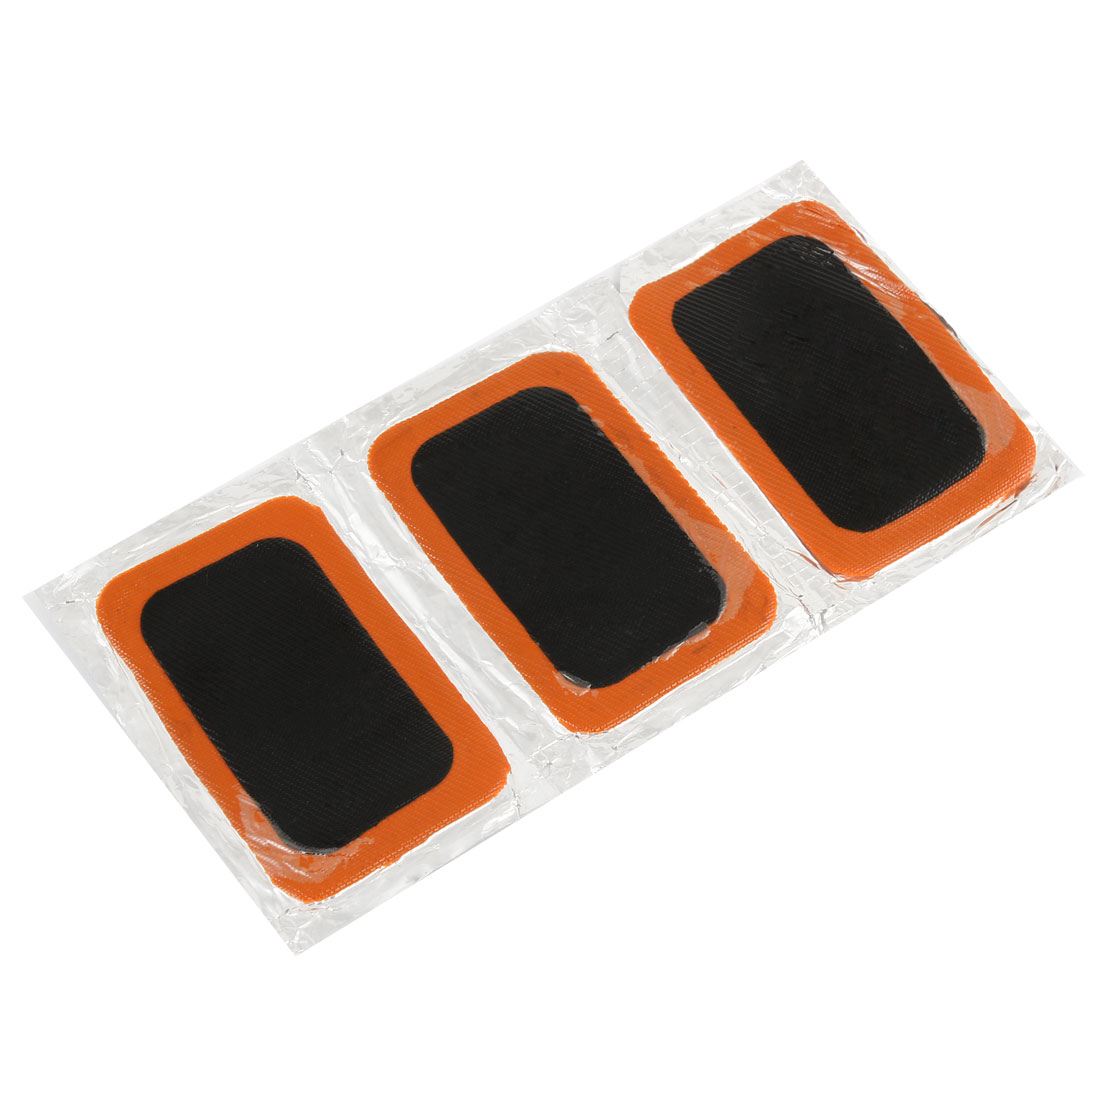 3 Pcs Availiable Spare Parts Motor Bike Tyre Tire Cold Patches 5mm x 3.1mm